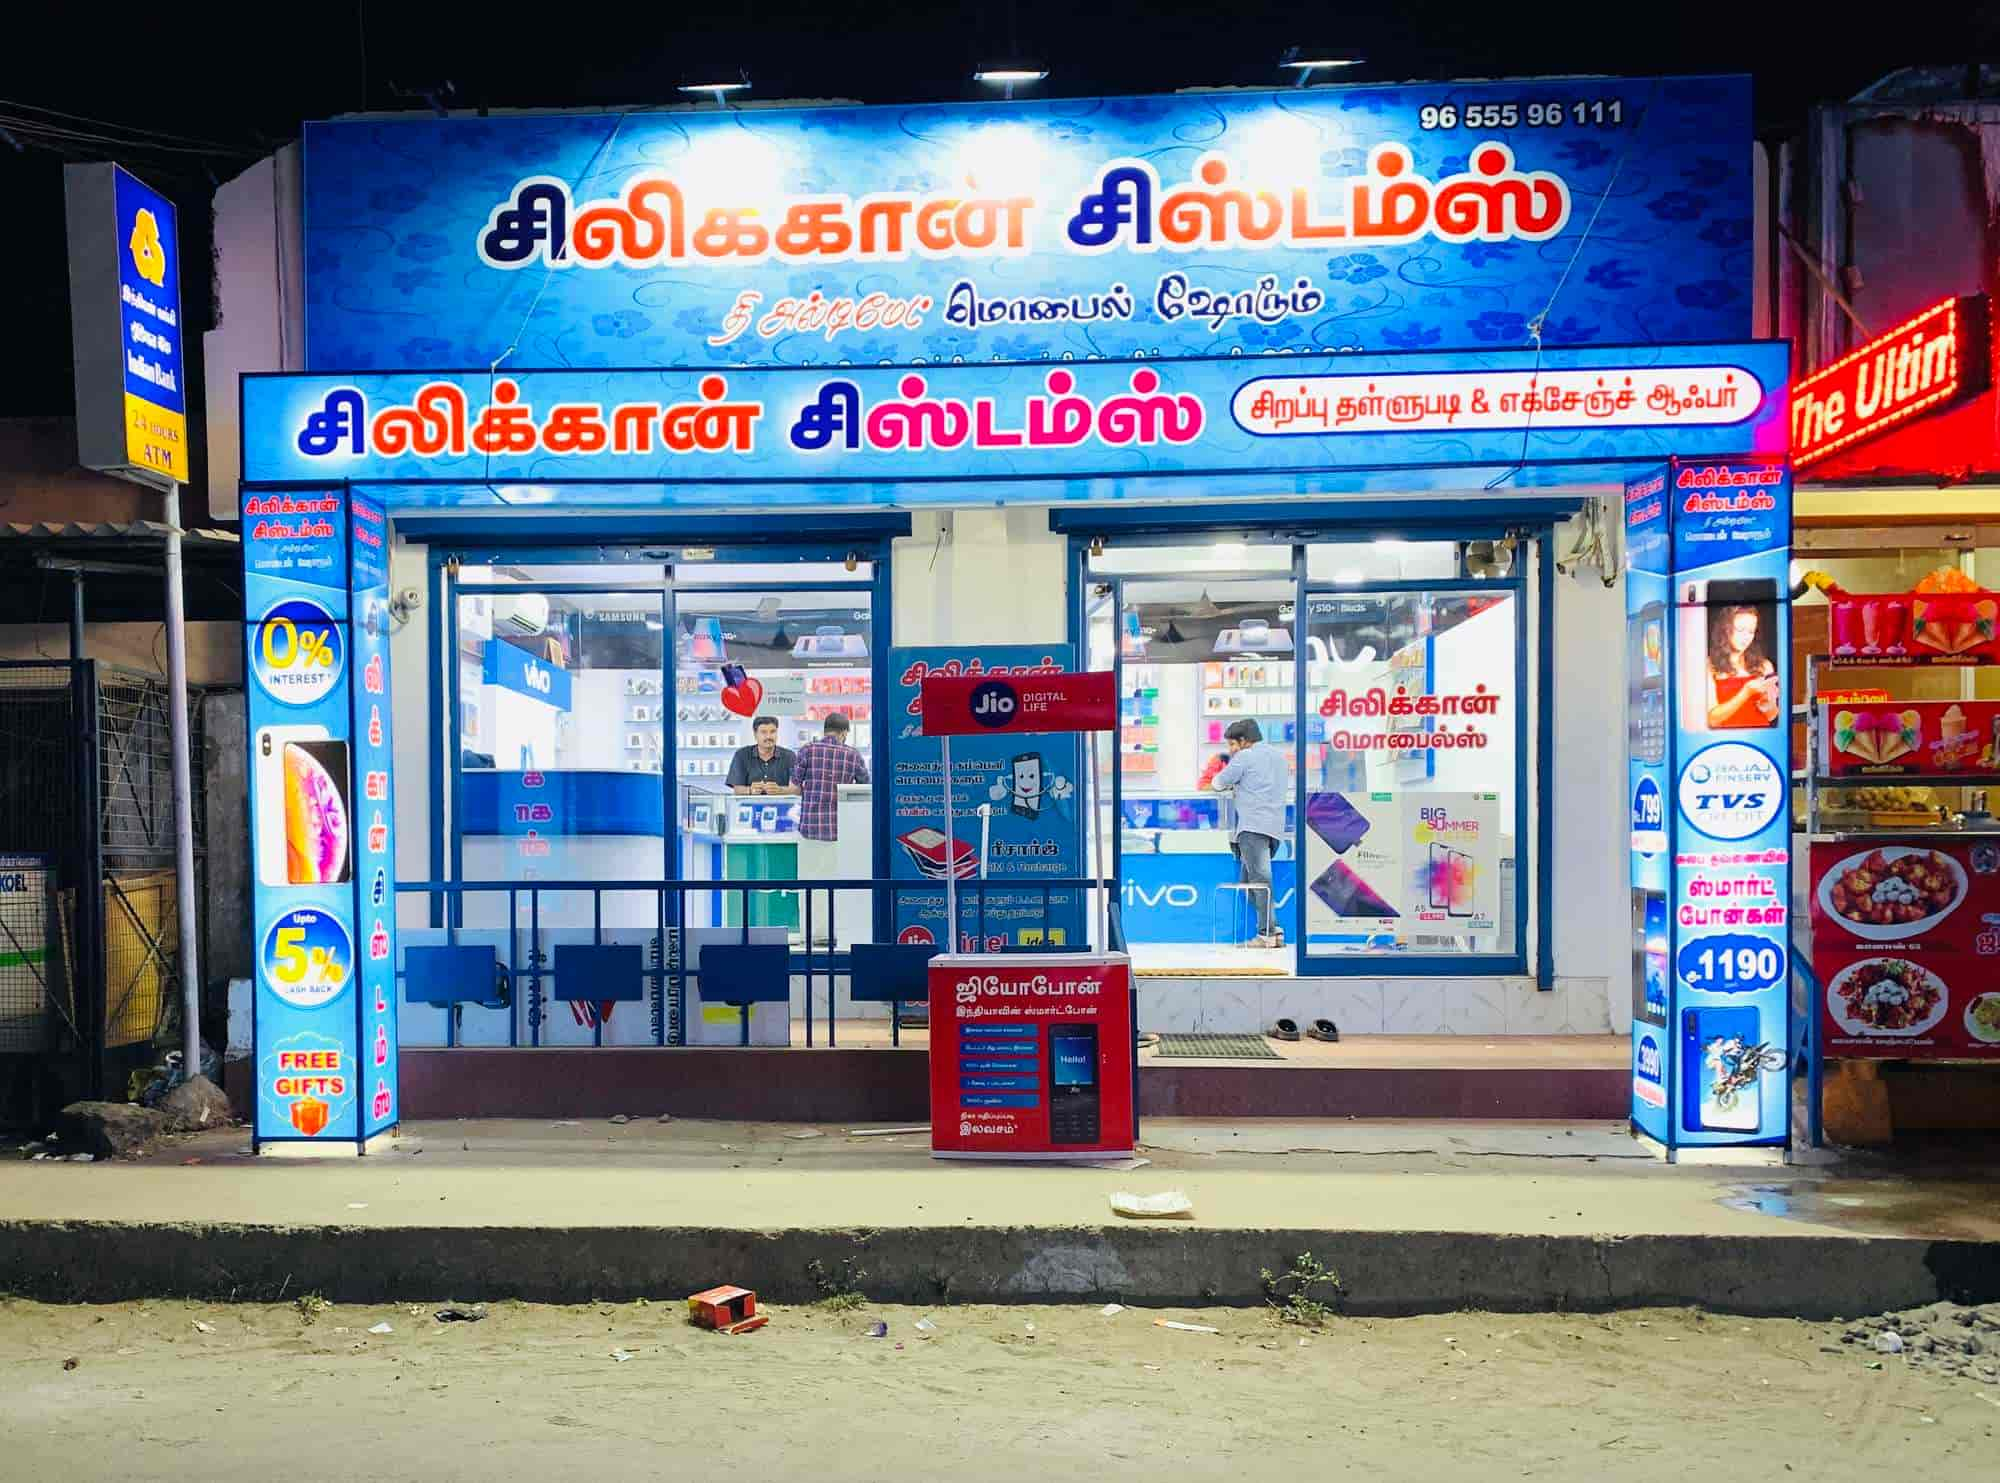 Silicon Systems, Palani to Dindigul Road - Mobile Phone